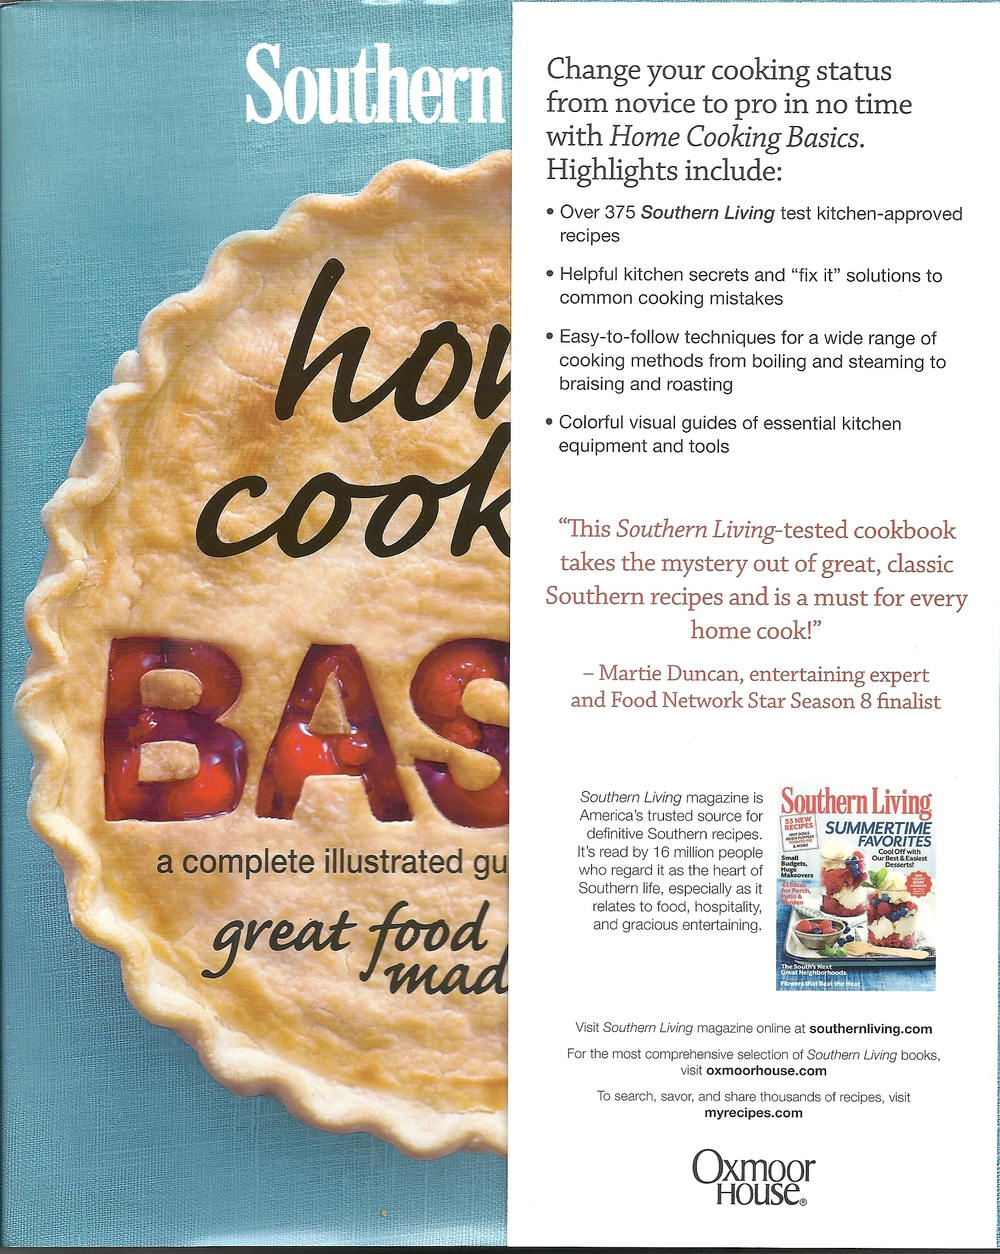 Southern_Living_Basics_Cookbook_flap.jpg